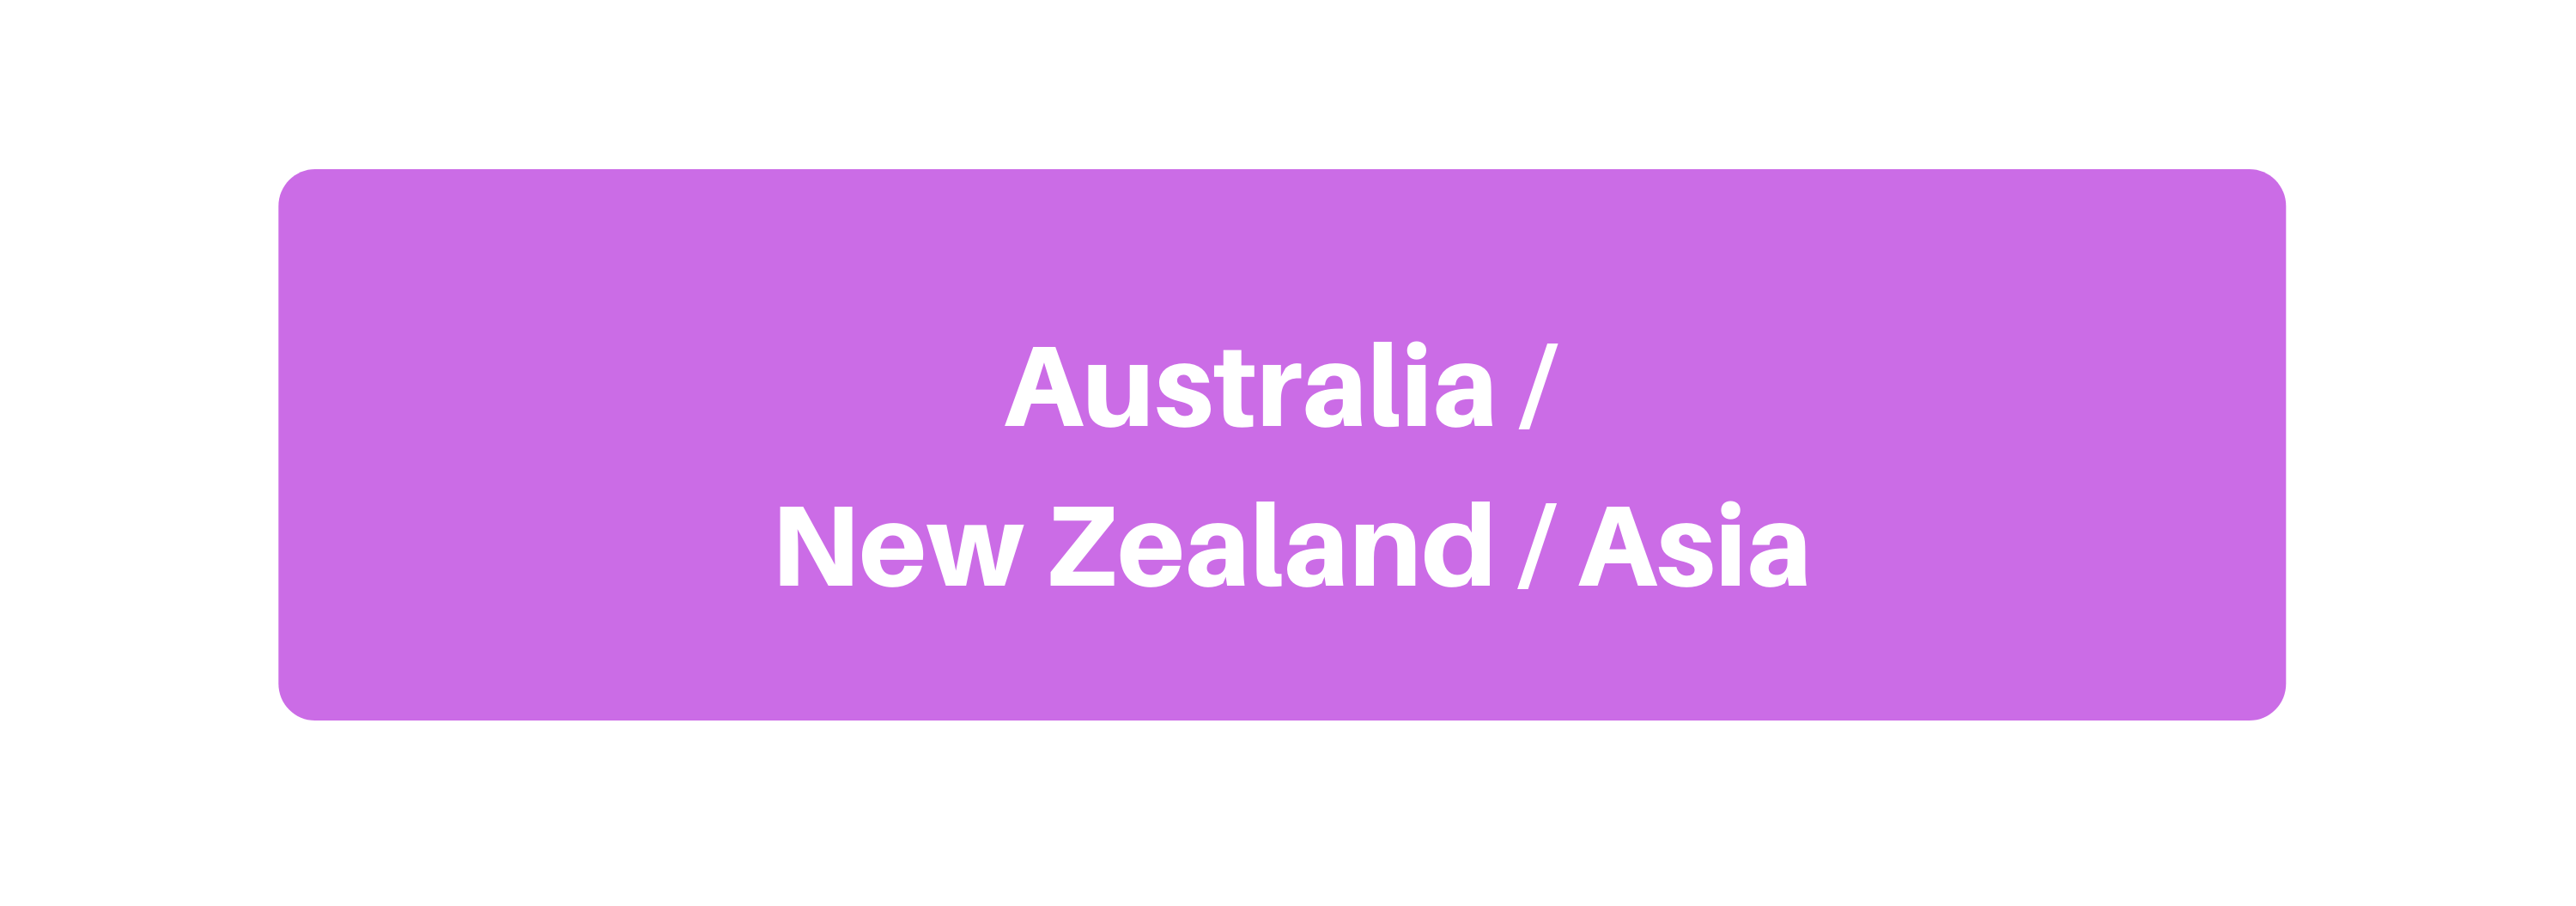 Register for webinar for Australia, New Zealand, and Asia